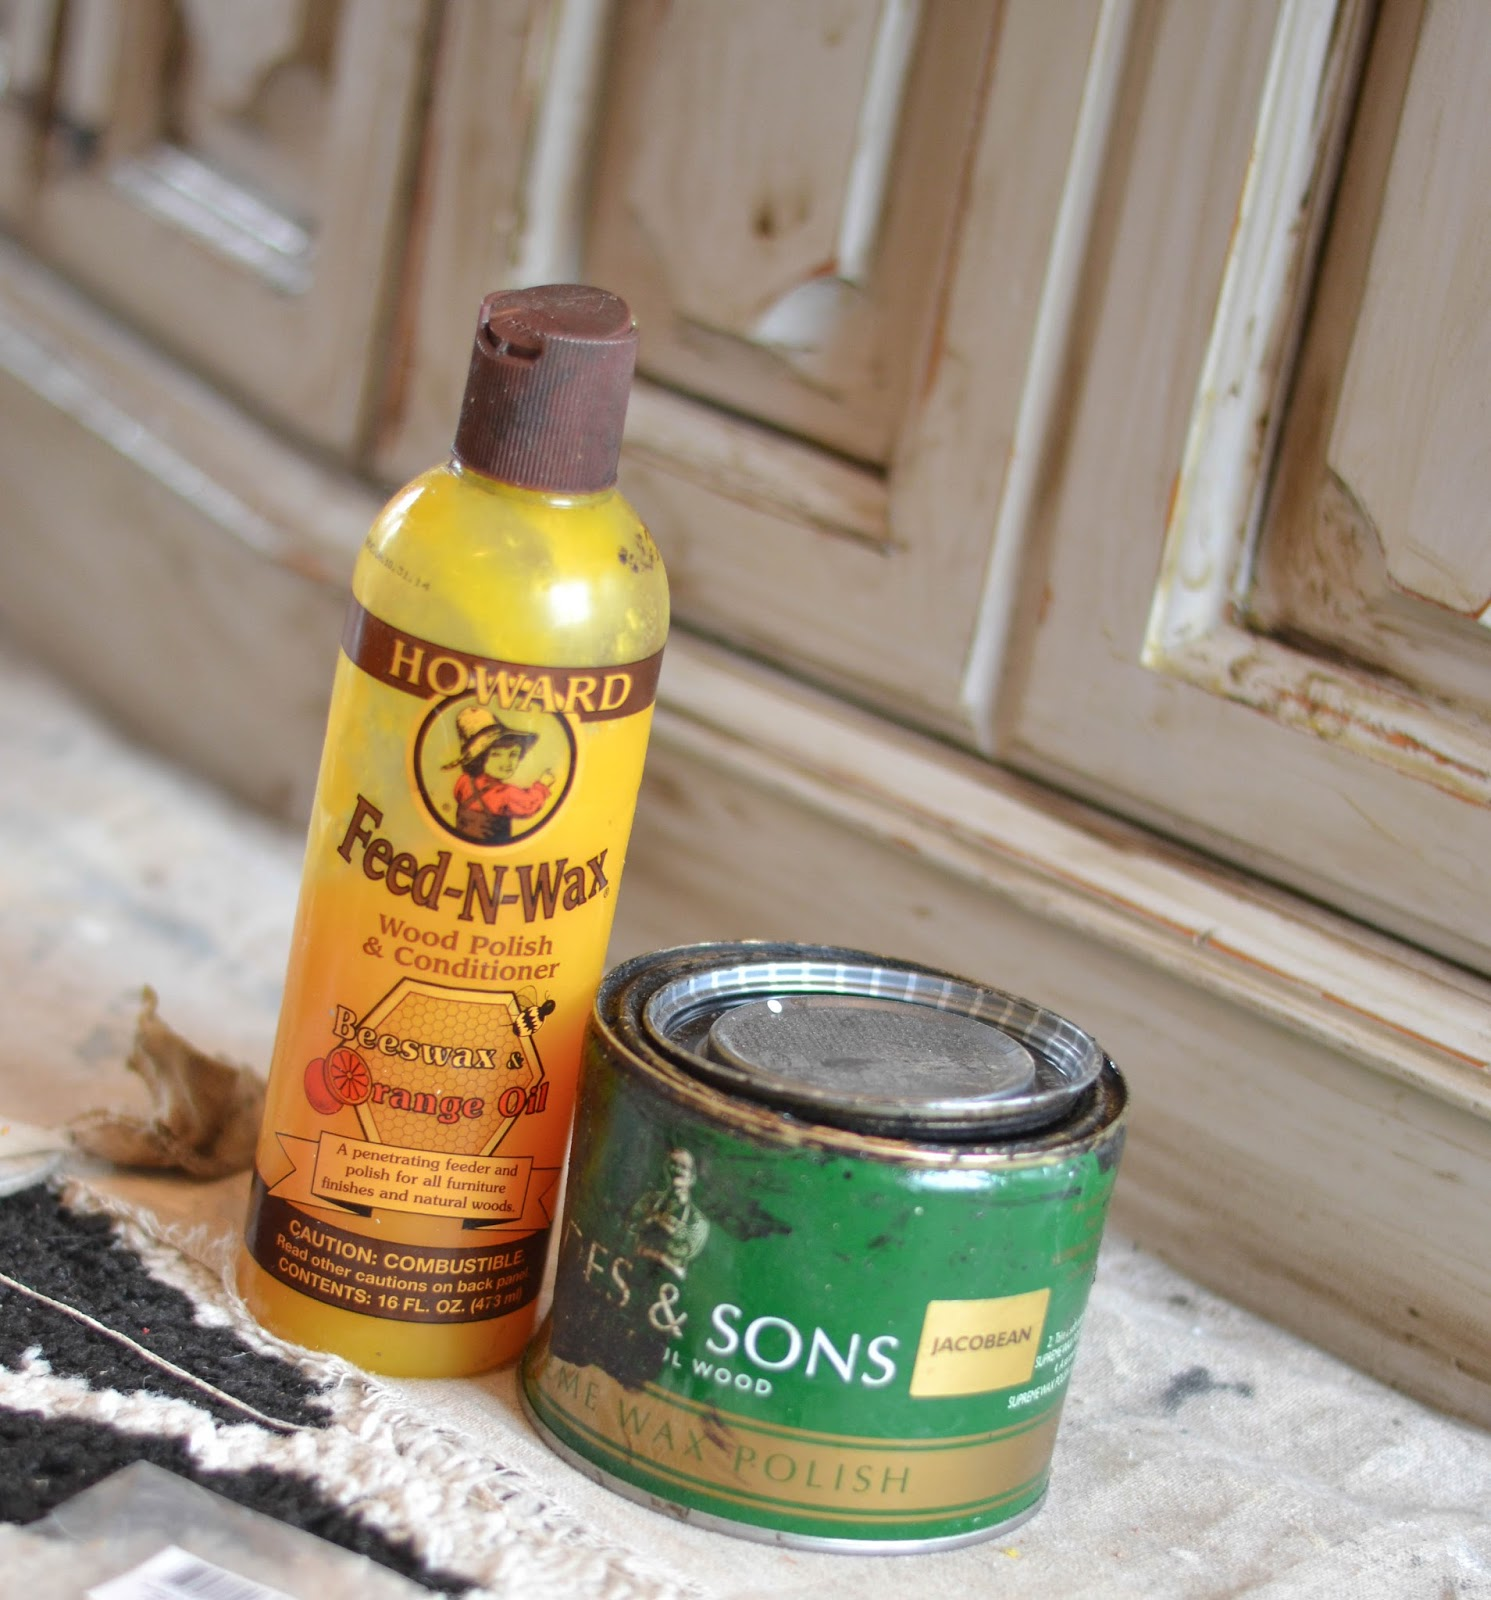 How To Use Websters Chalk Paint Powder